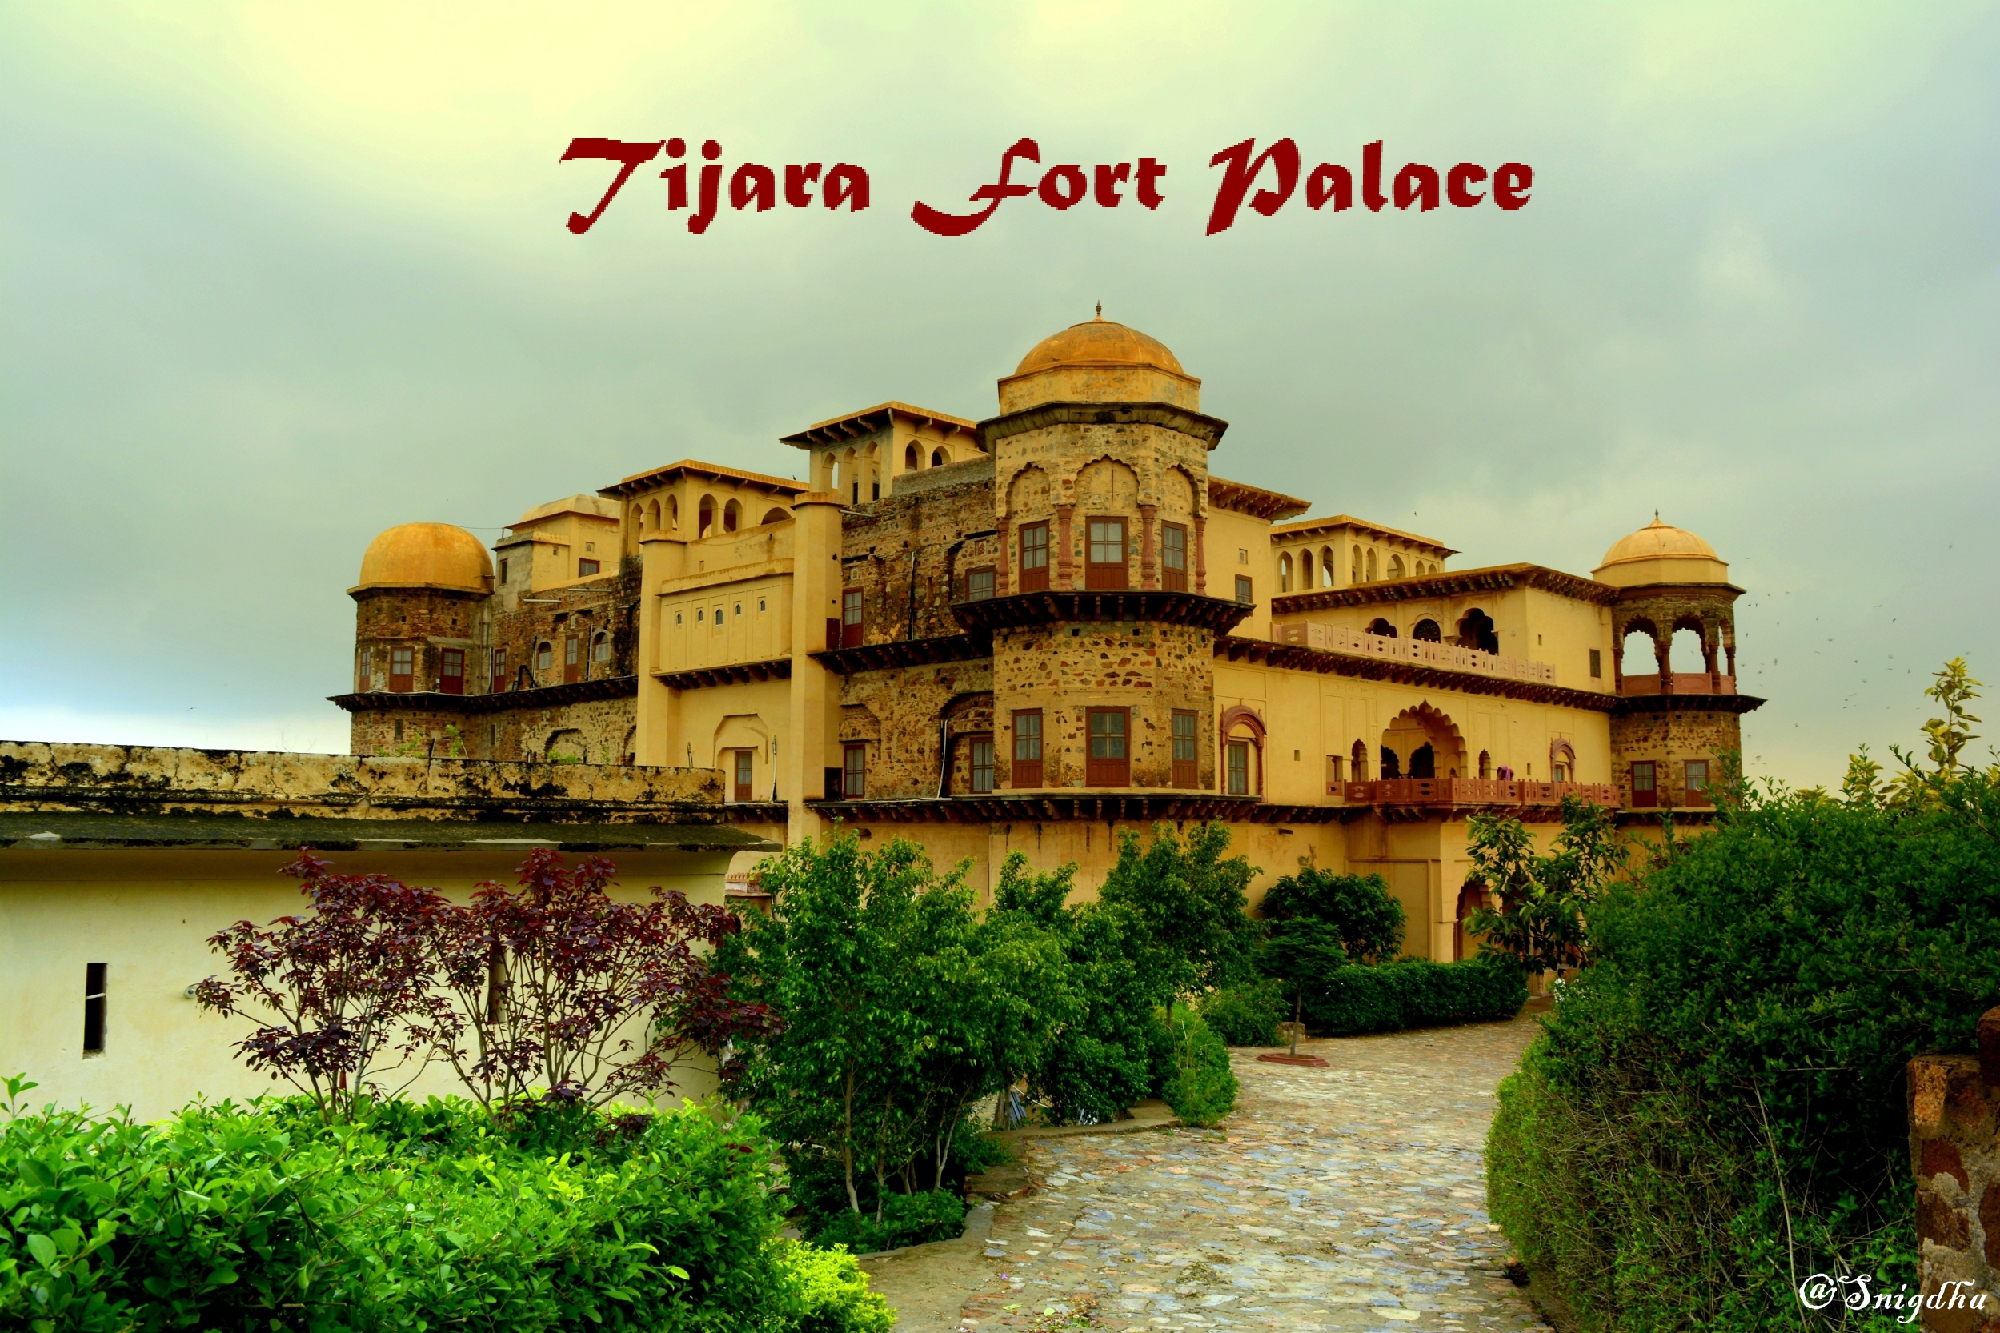 The majestic Mahals of Tijara Fort Palace